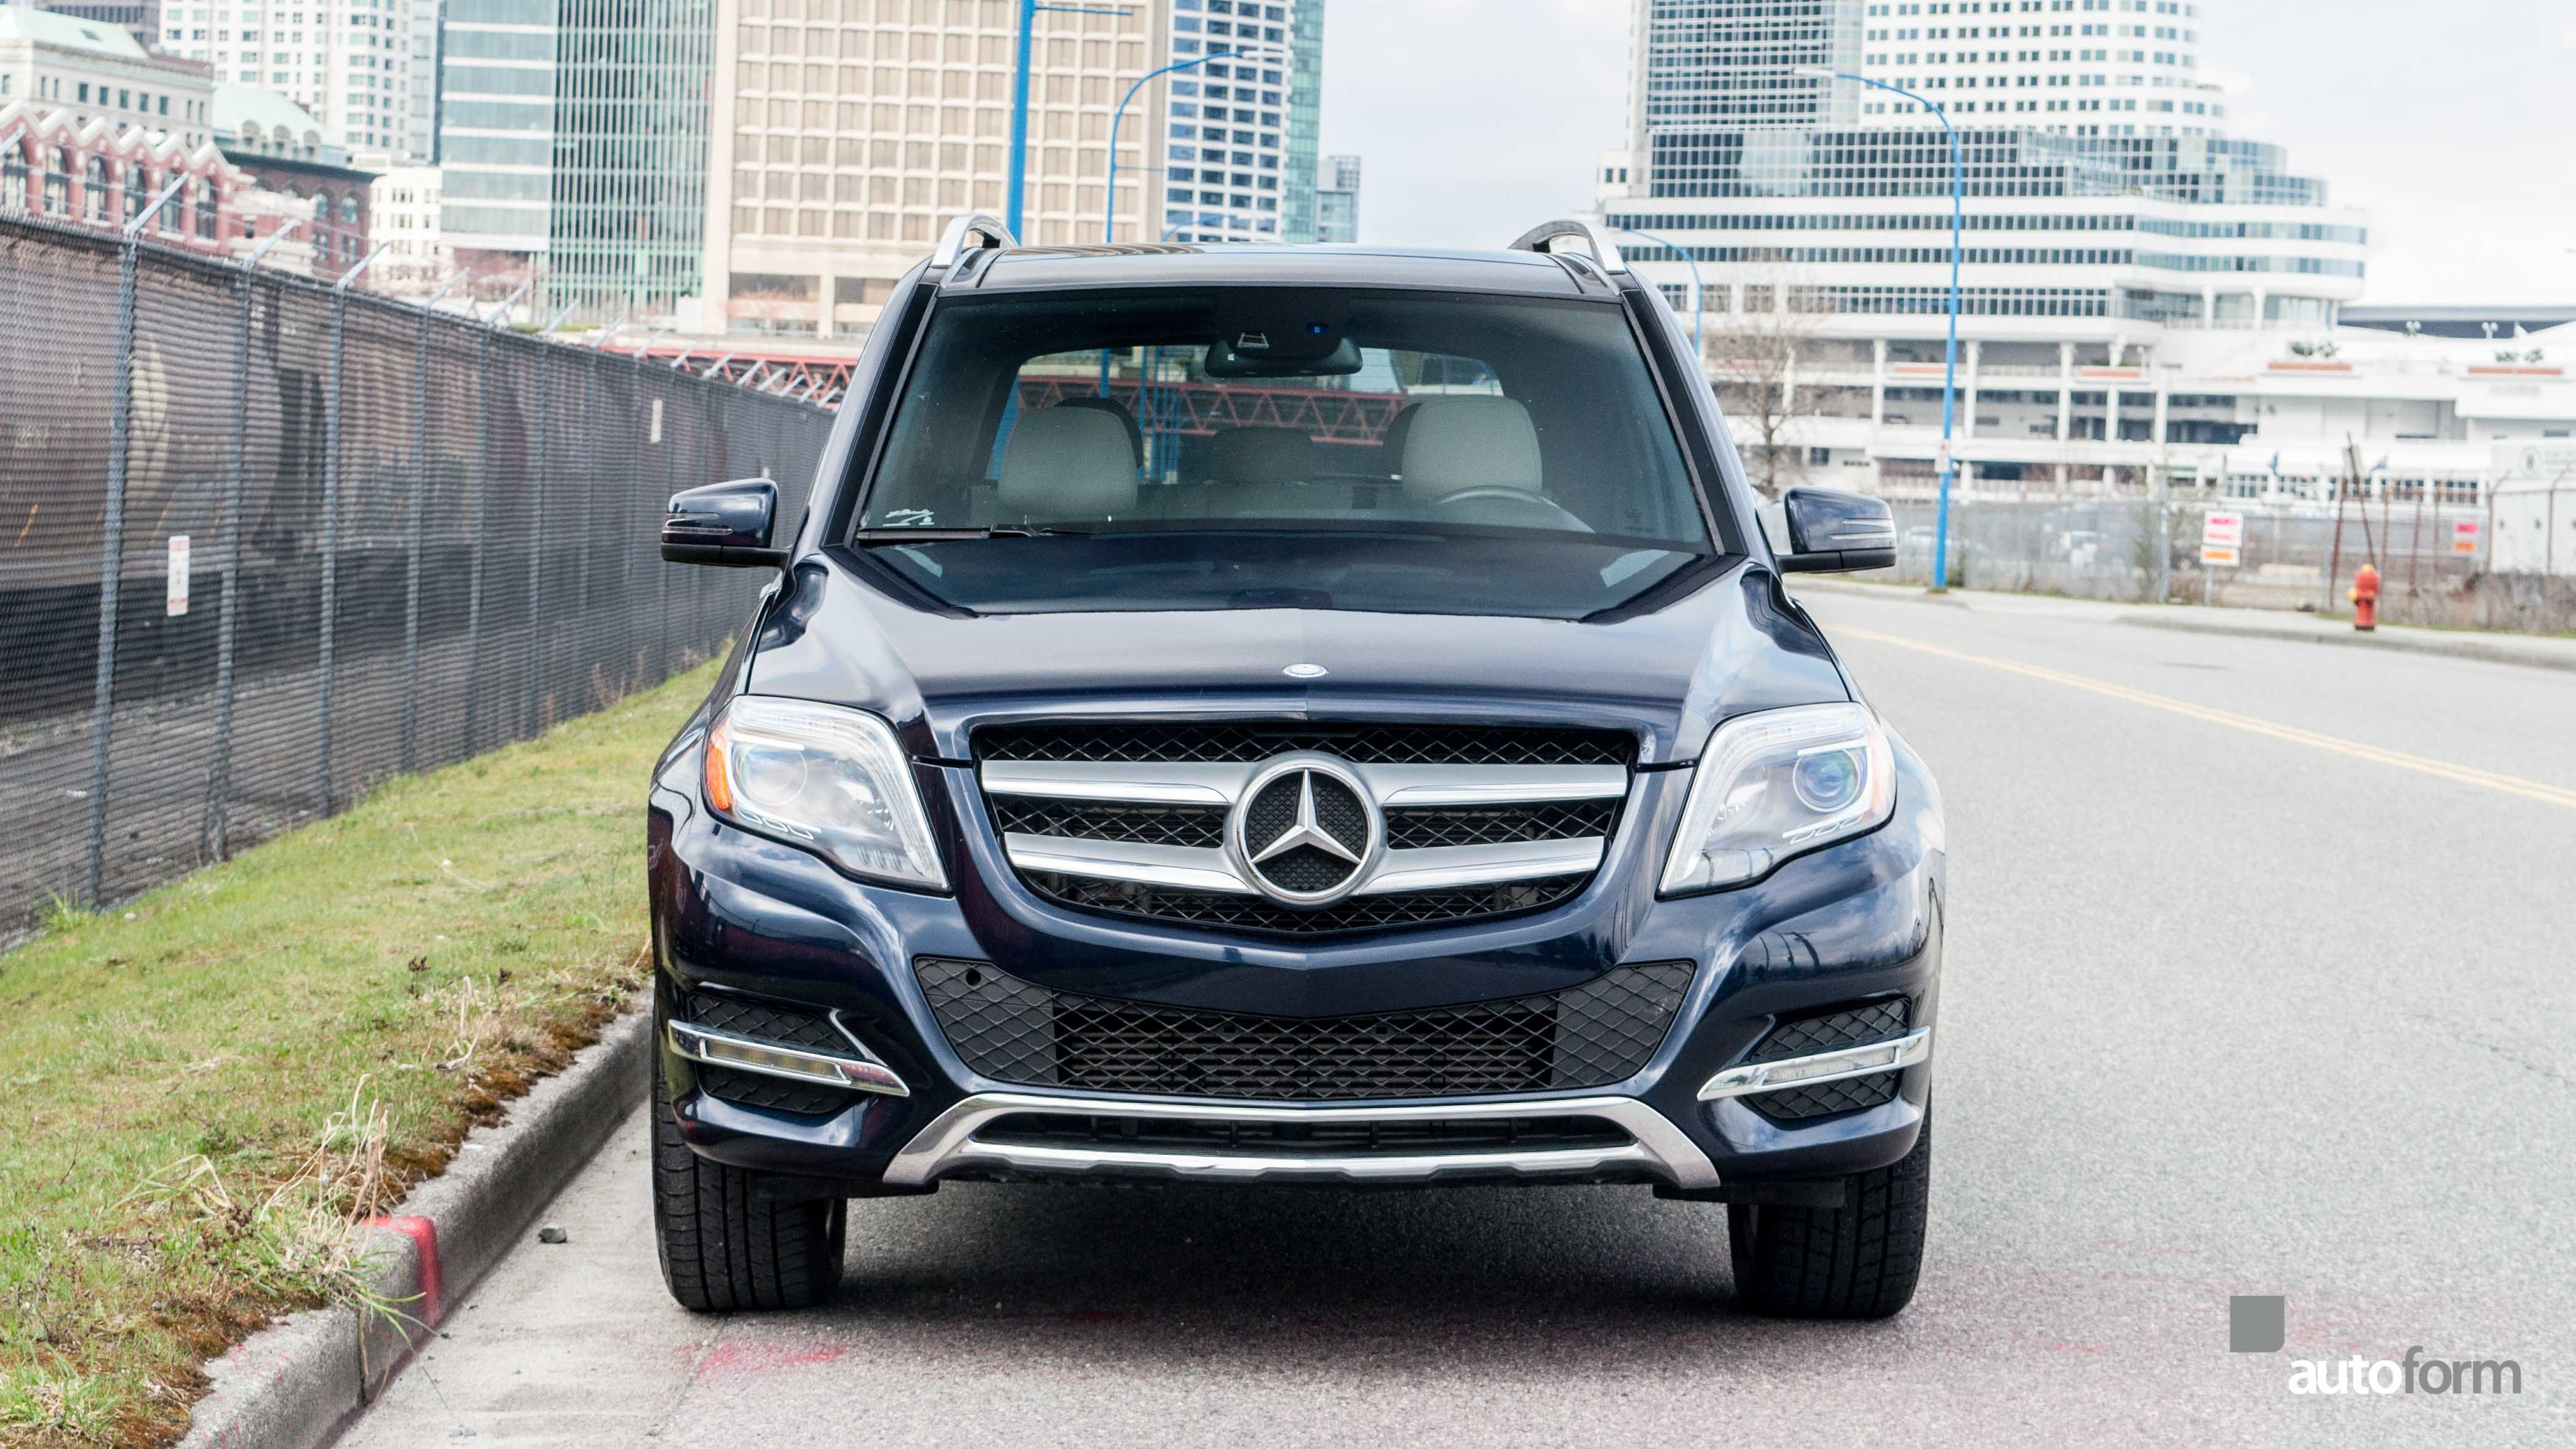 2015 mercedes benz glk 250 bluetec 4matic autoform. Black Bedroom Furniture Sets. Home Design Ideas